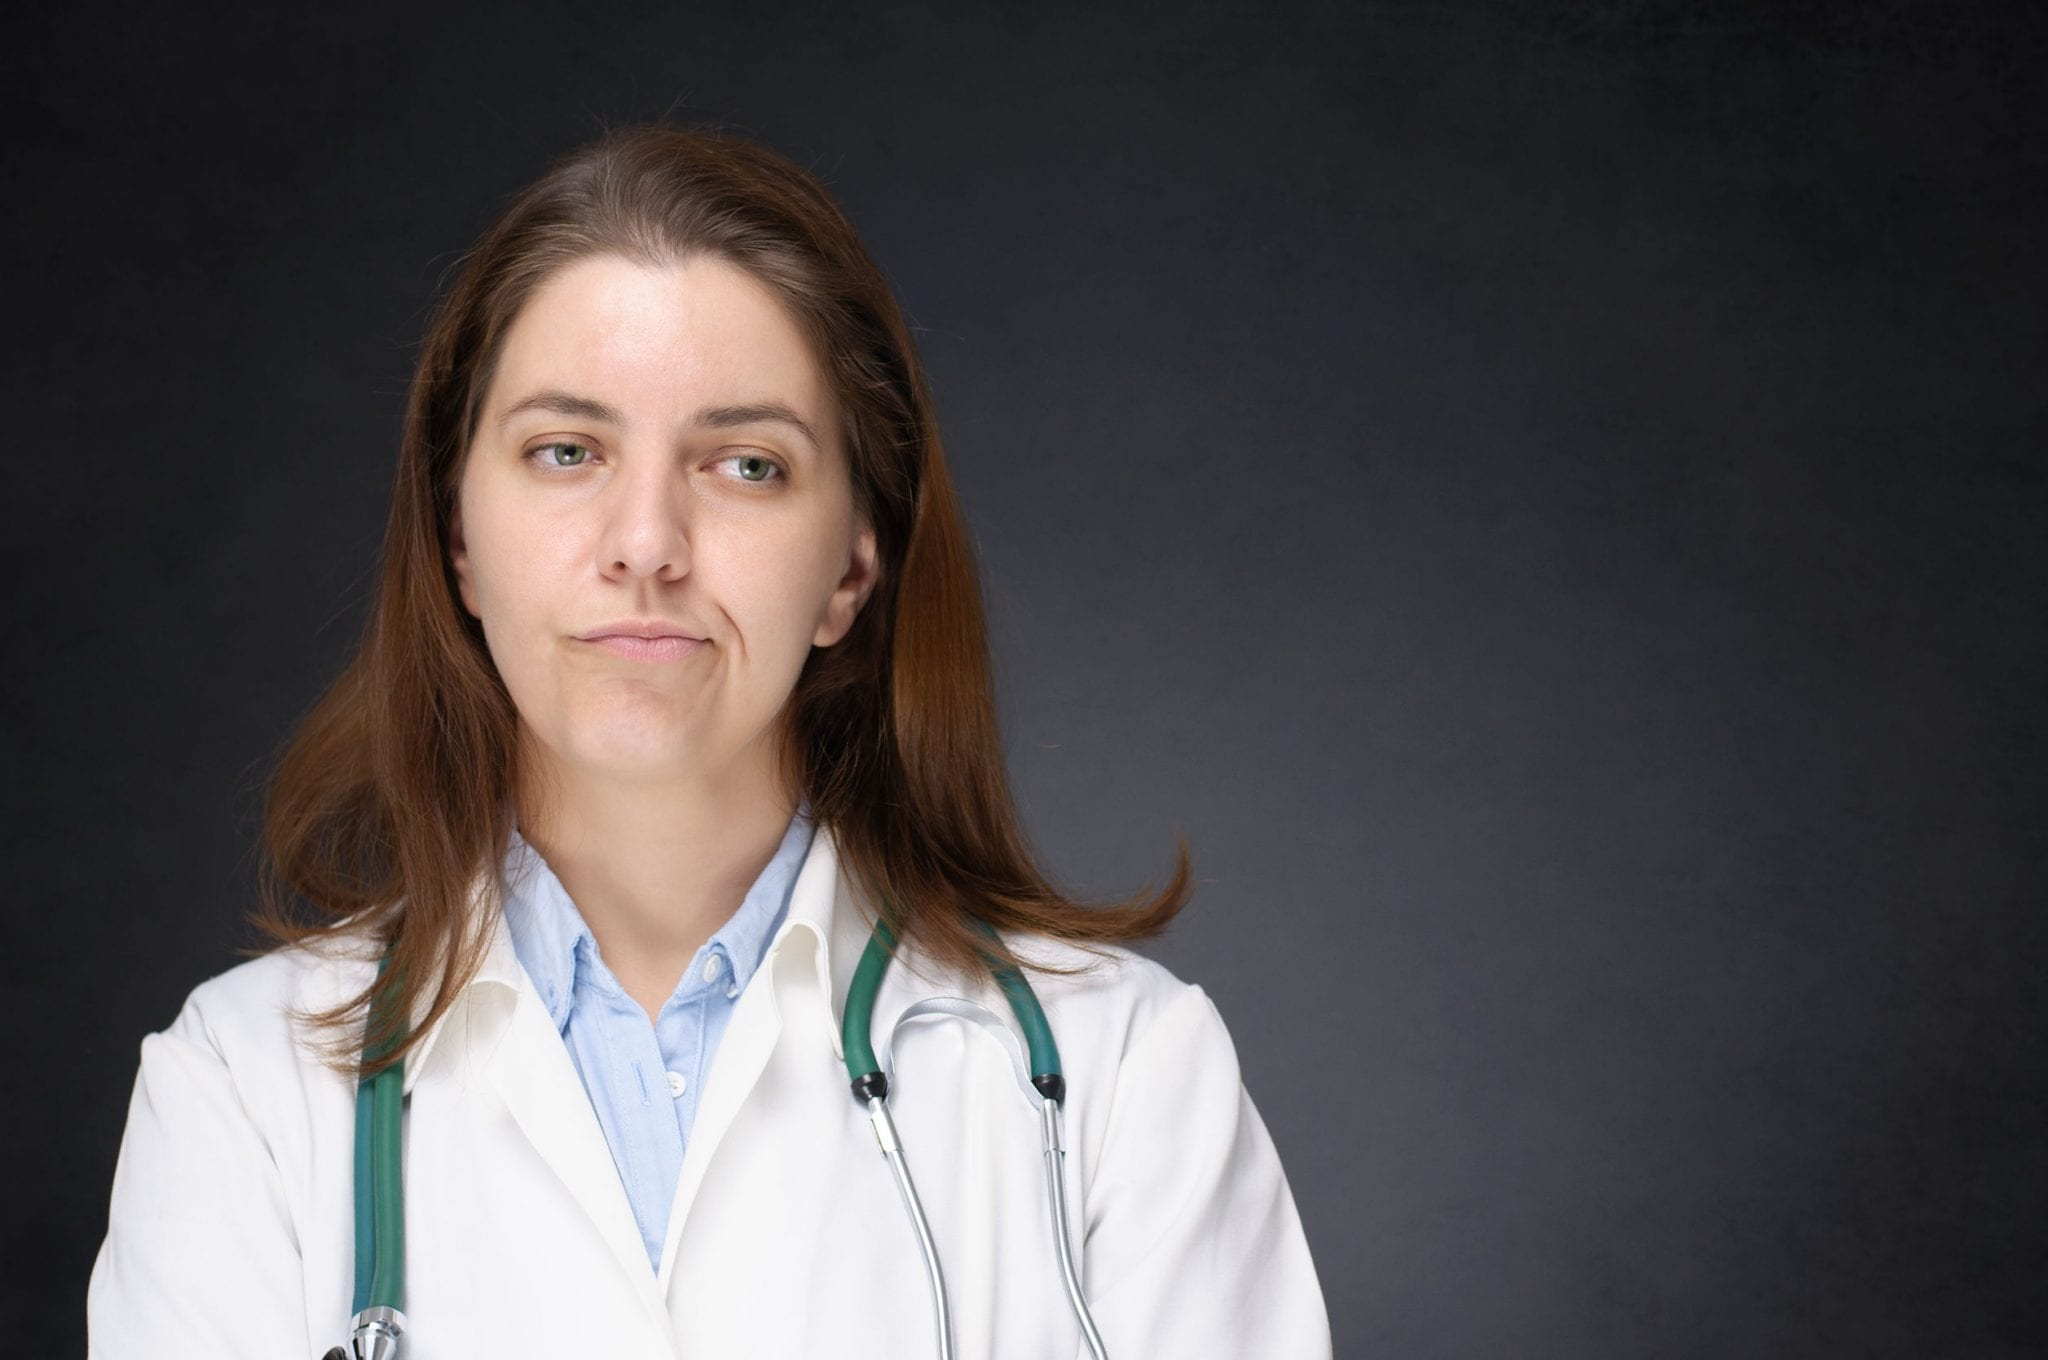 Portrait of a bored, disappointed female doctor